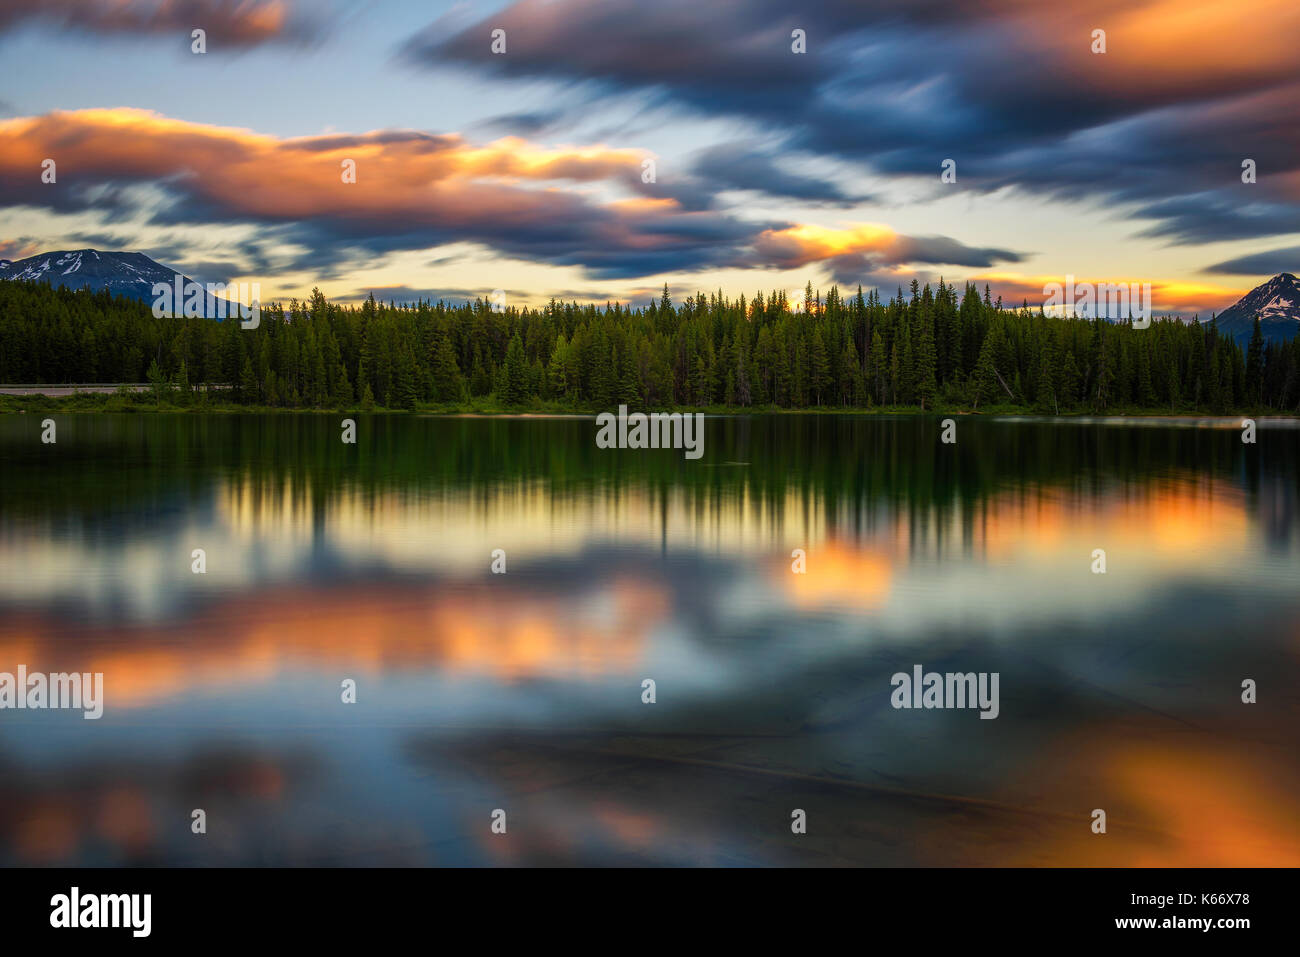 Scenic sunset over Herbert Lake along the roadside of the Icefields Parkway in Banff National Park, Alberta, Canada. - Stock Image